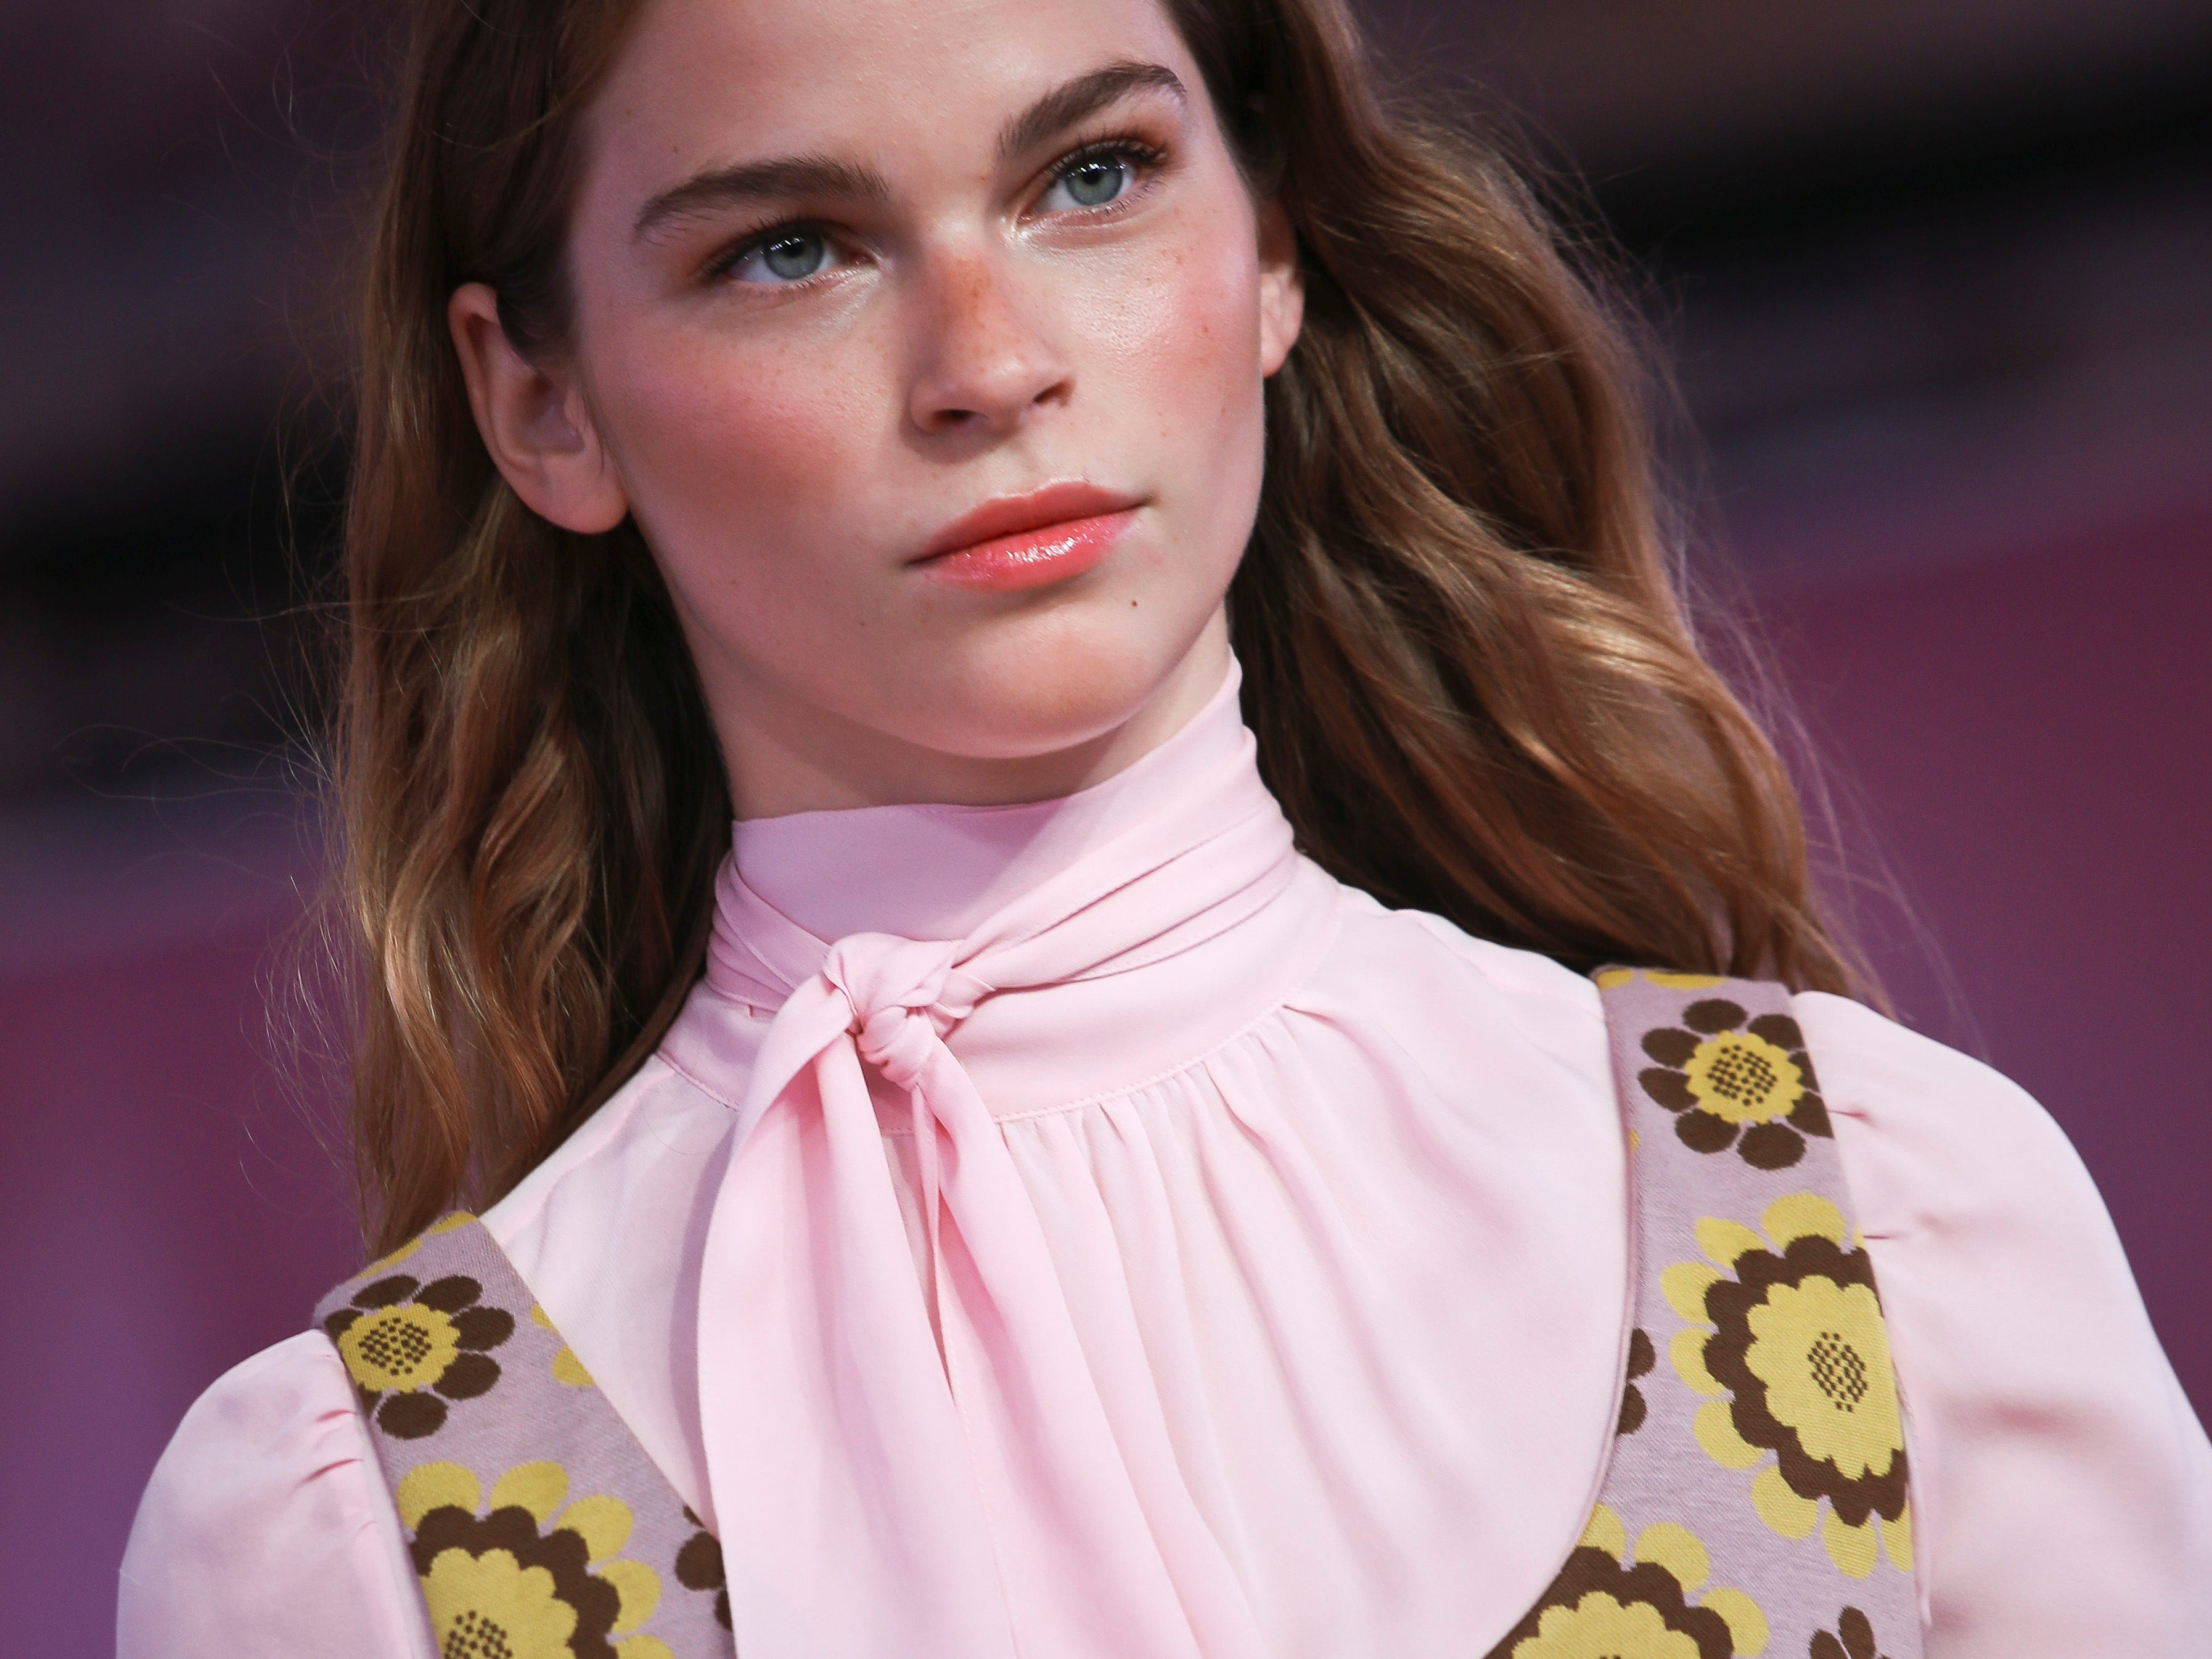 Fashion from the Kate Spade collection is modeled during Fashion Week, Friday Sept. 7, 2018 in New York. (AP Photo/Bebeto Matthews) ORG XMIT: NYBM108